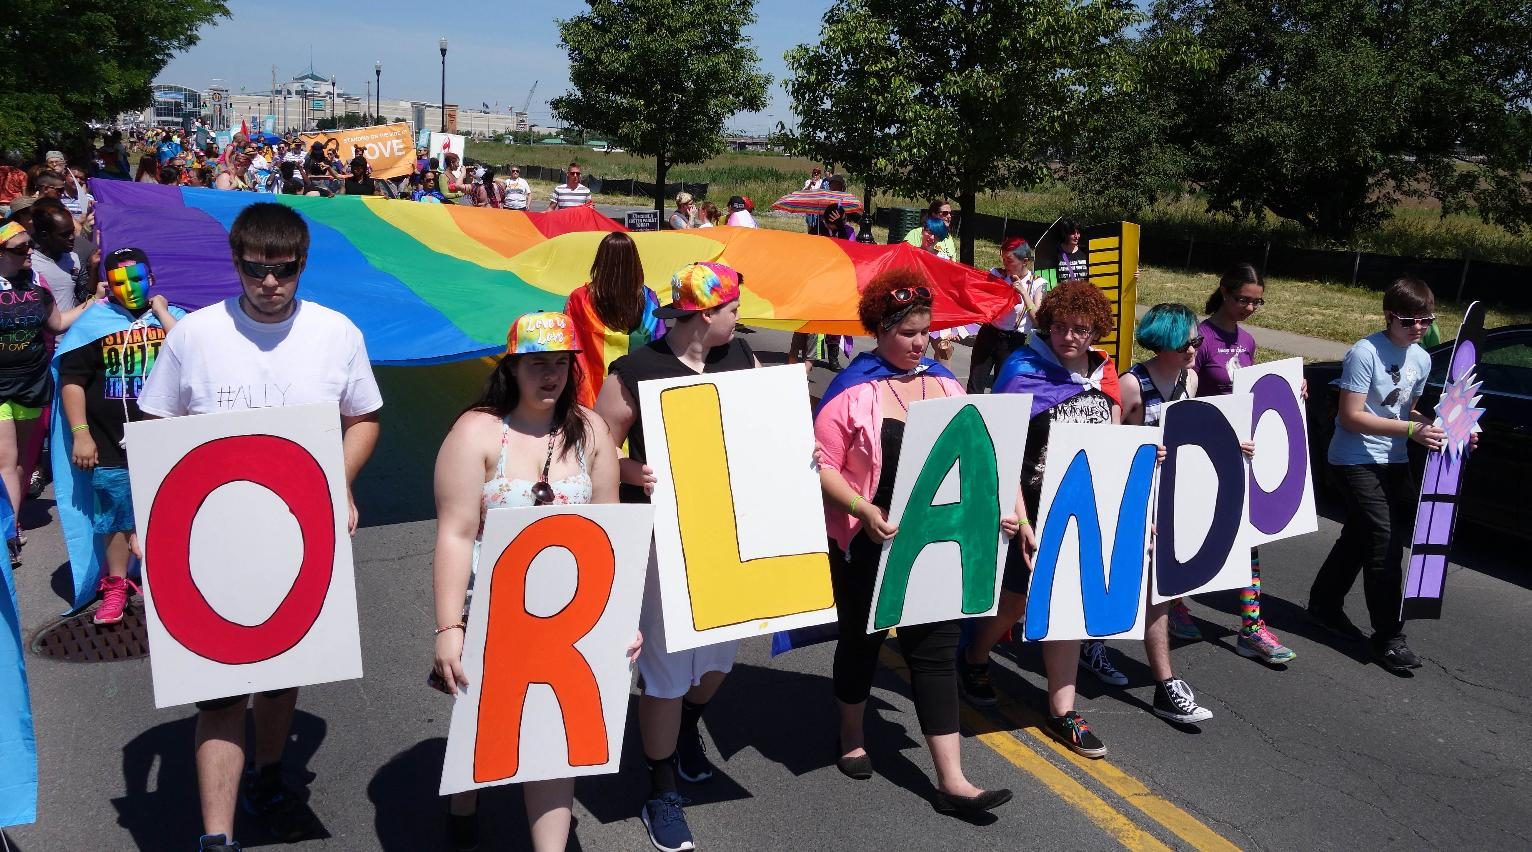 Gay pride events festive but some concerned after Orlando ...